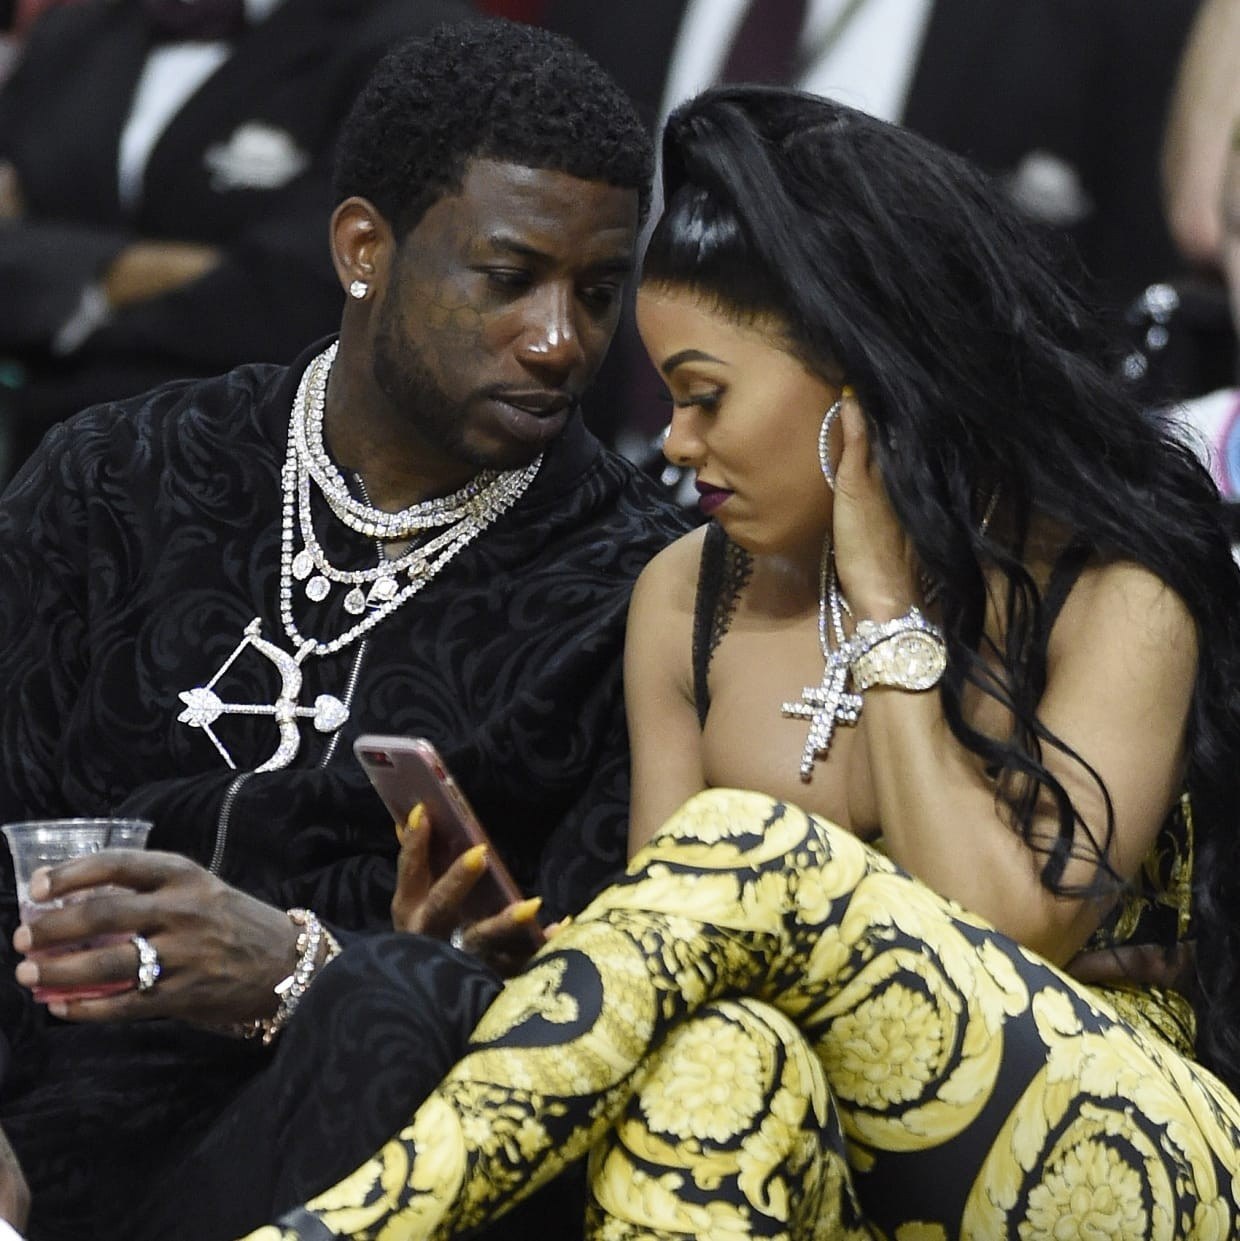 7 months after their lavish wedding, Gucci Mane has unfollowed his wife Keyshia Ka